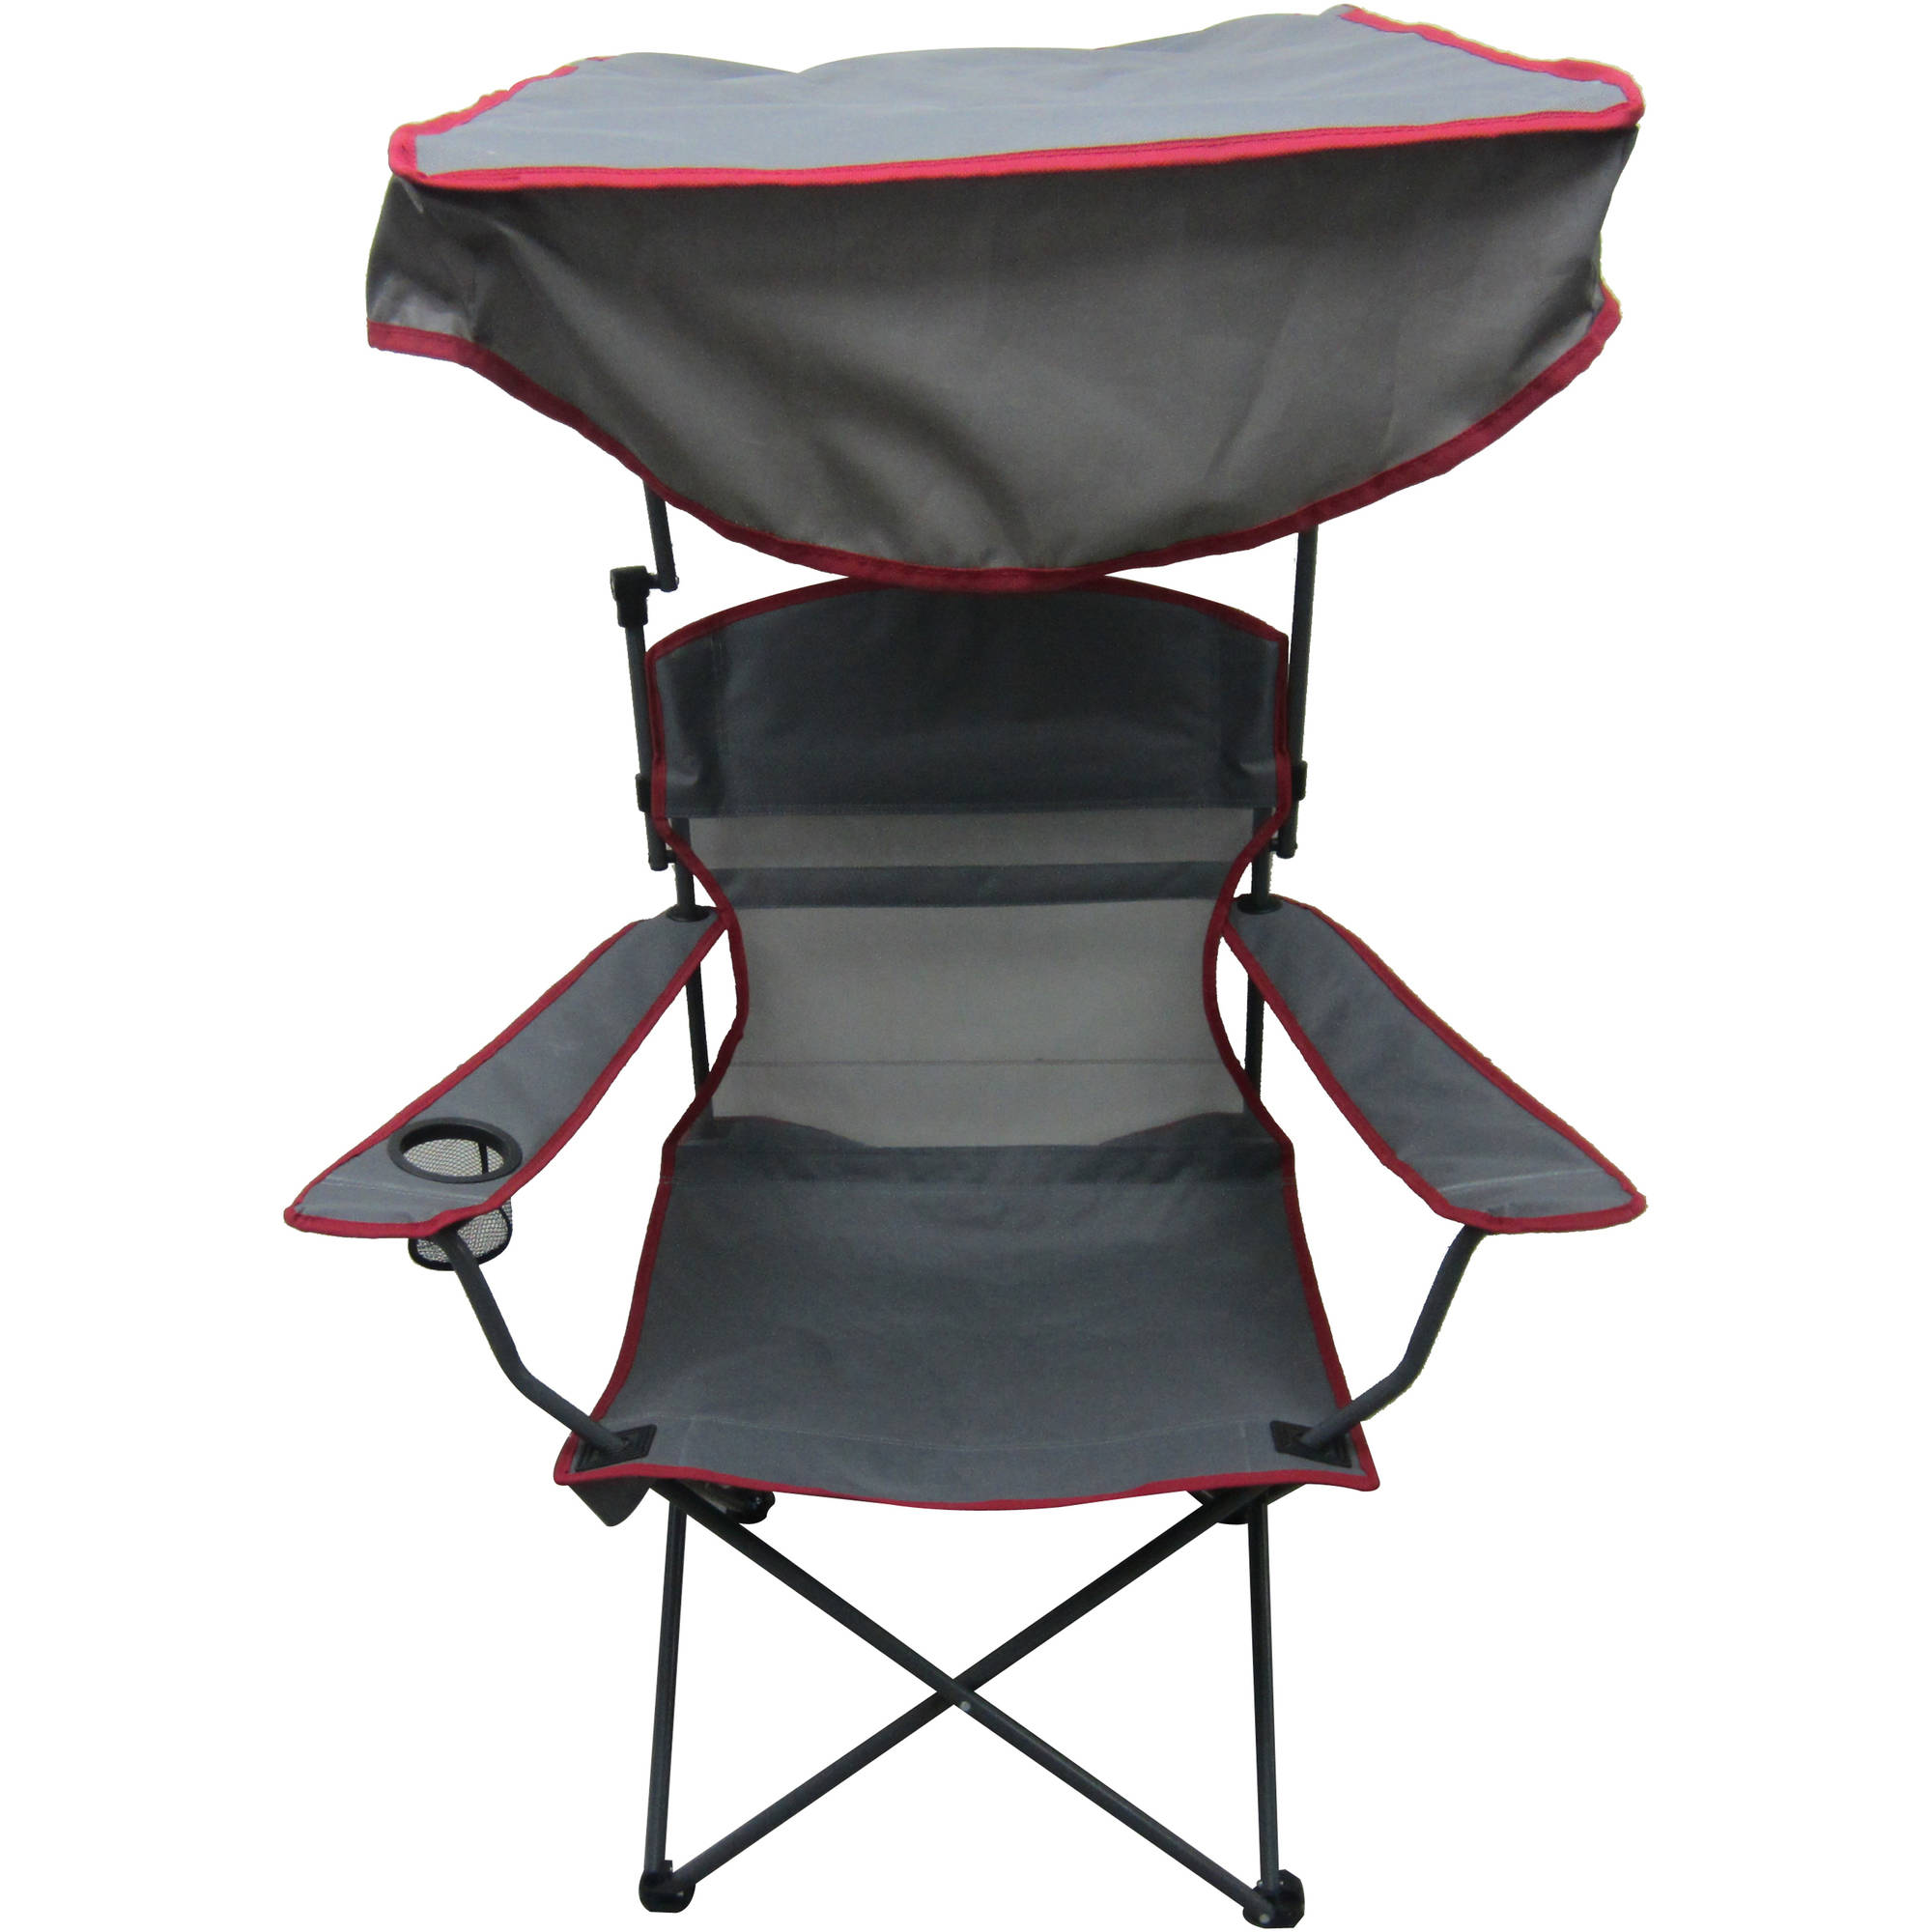 Ozark Trail Adjustable Sunshade Chair